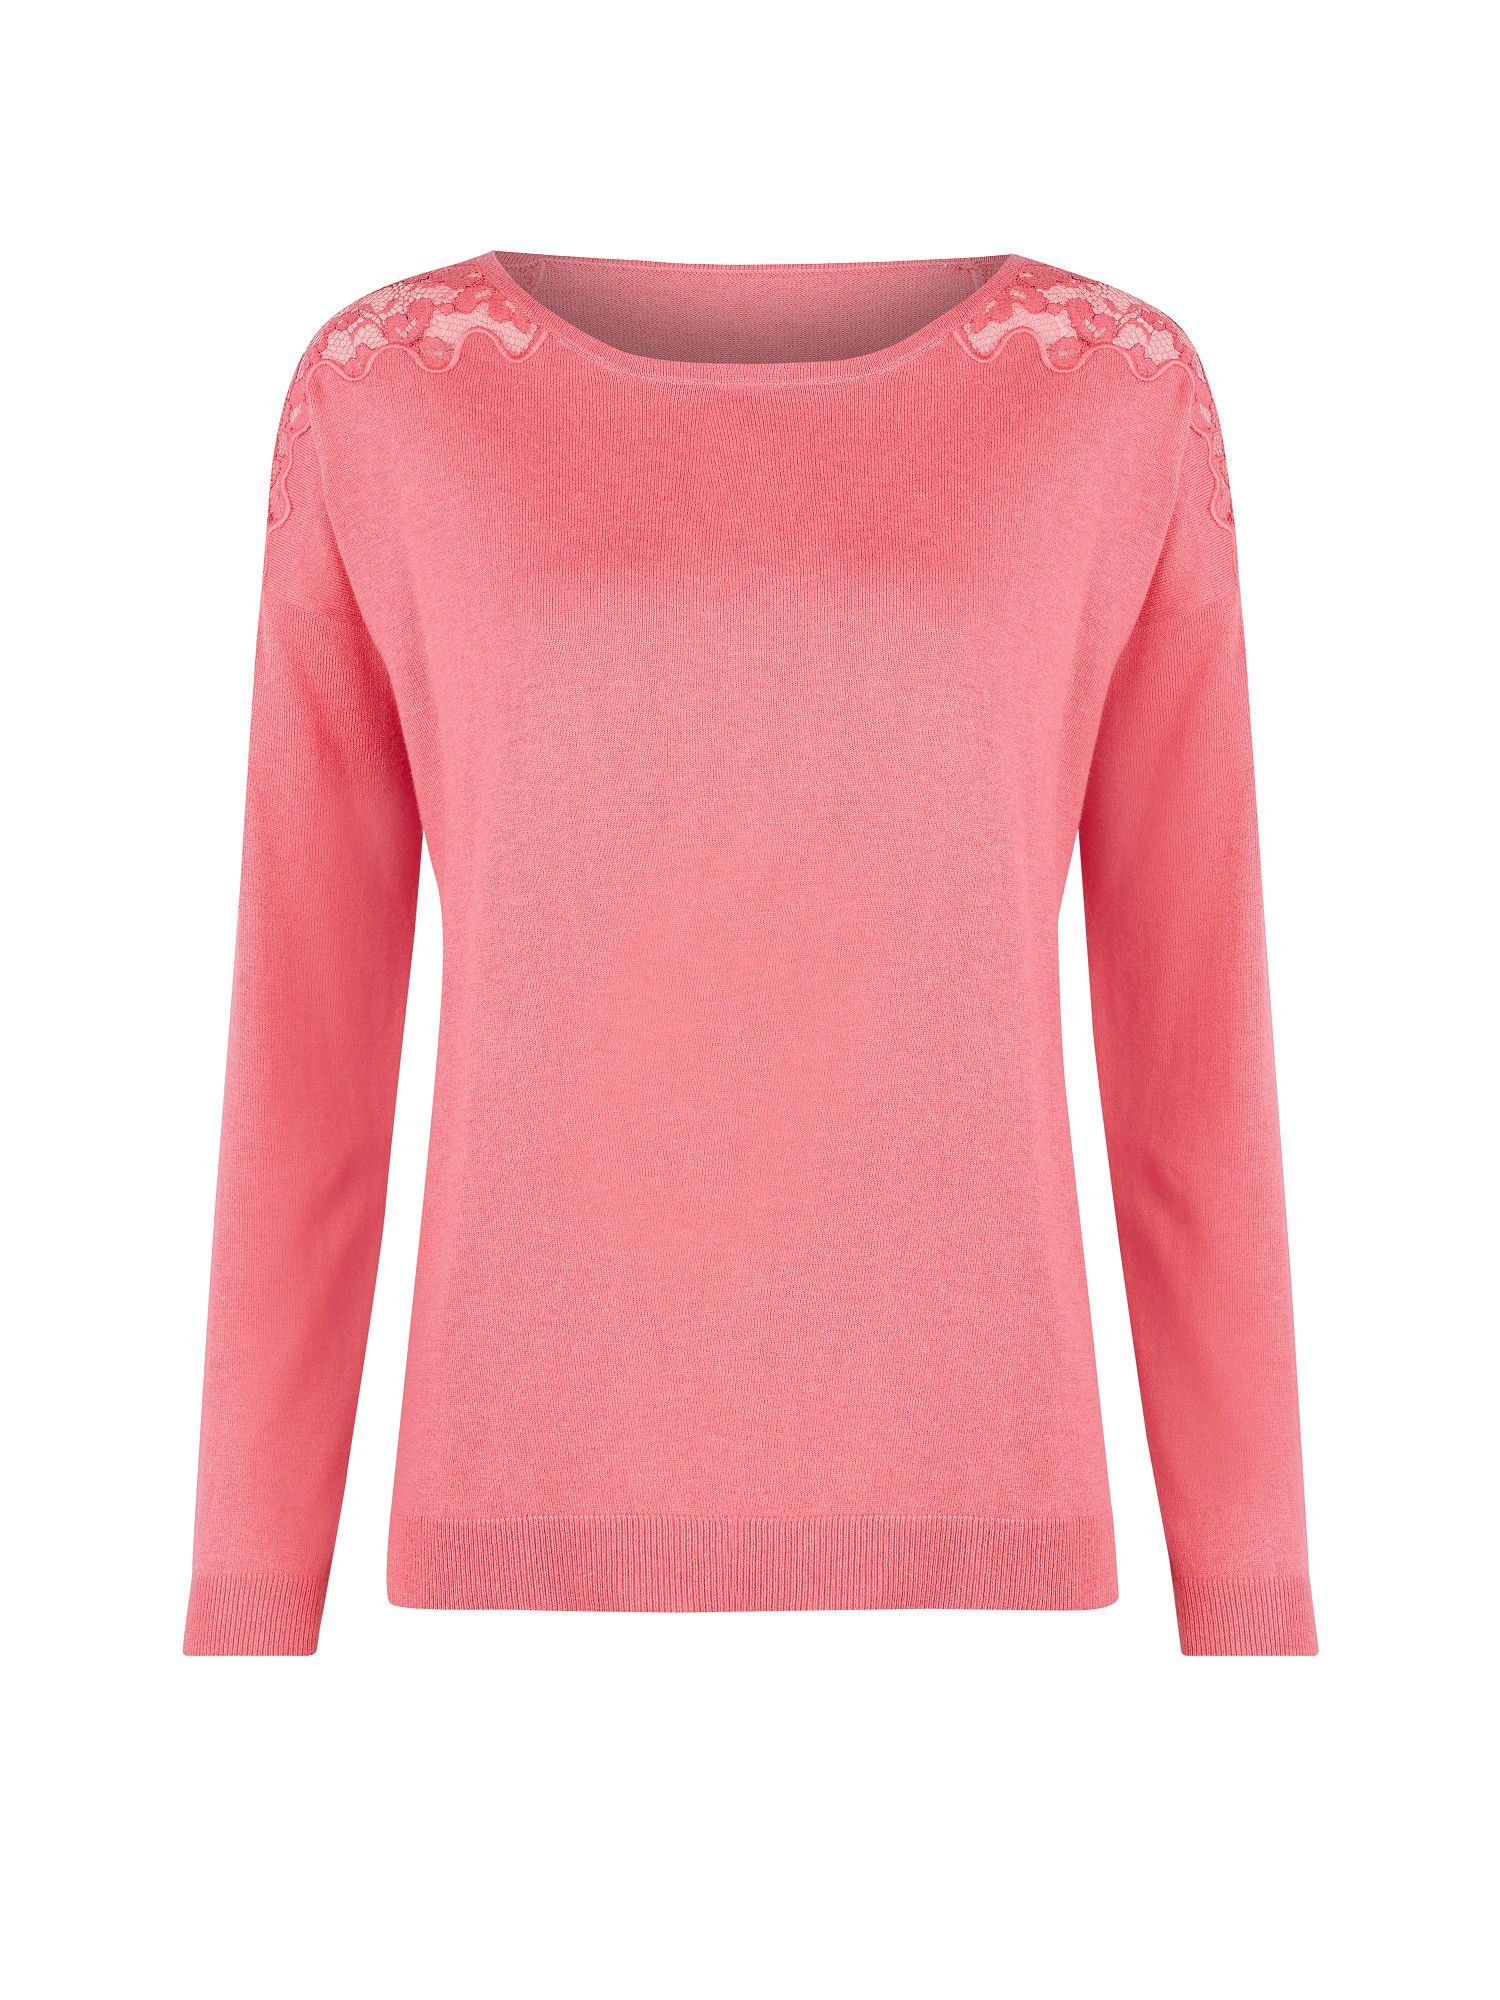 Pretty lace shoulder french pink jumper